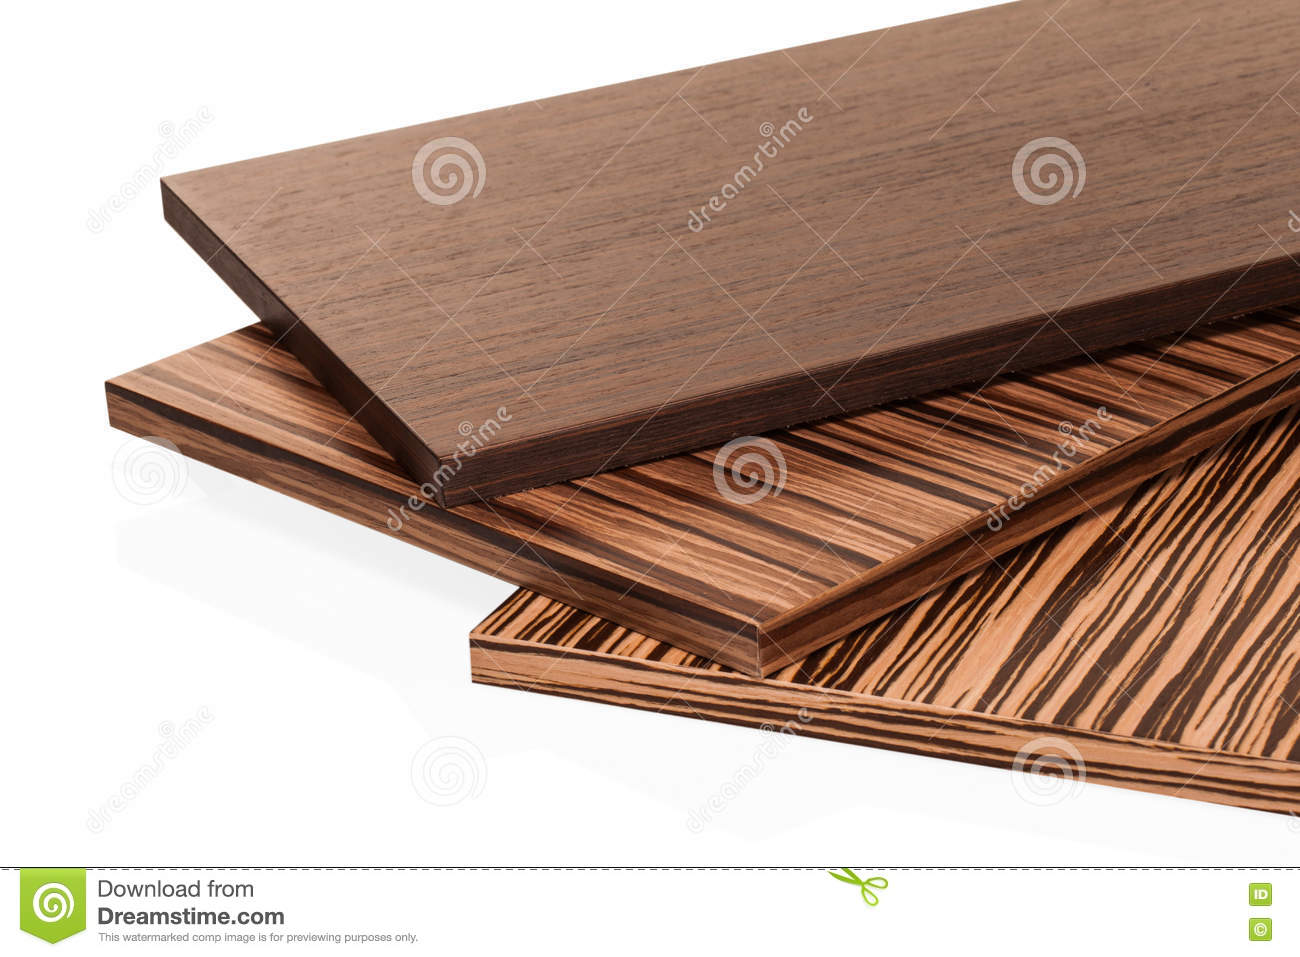 Chipboard or MDF, which is better 60